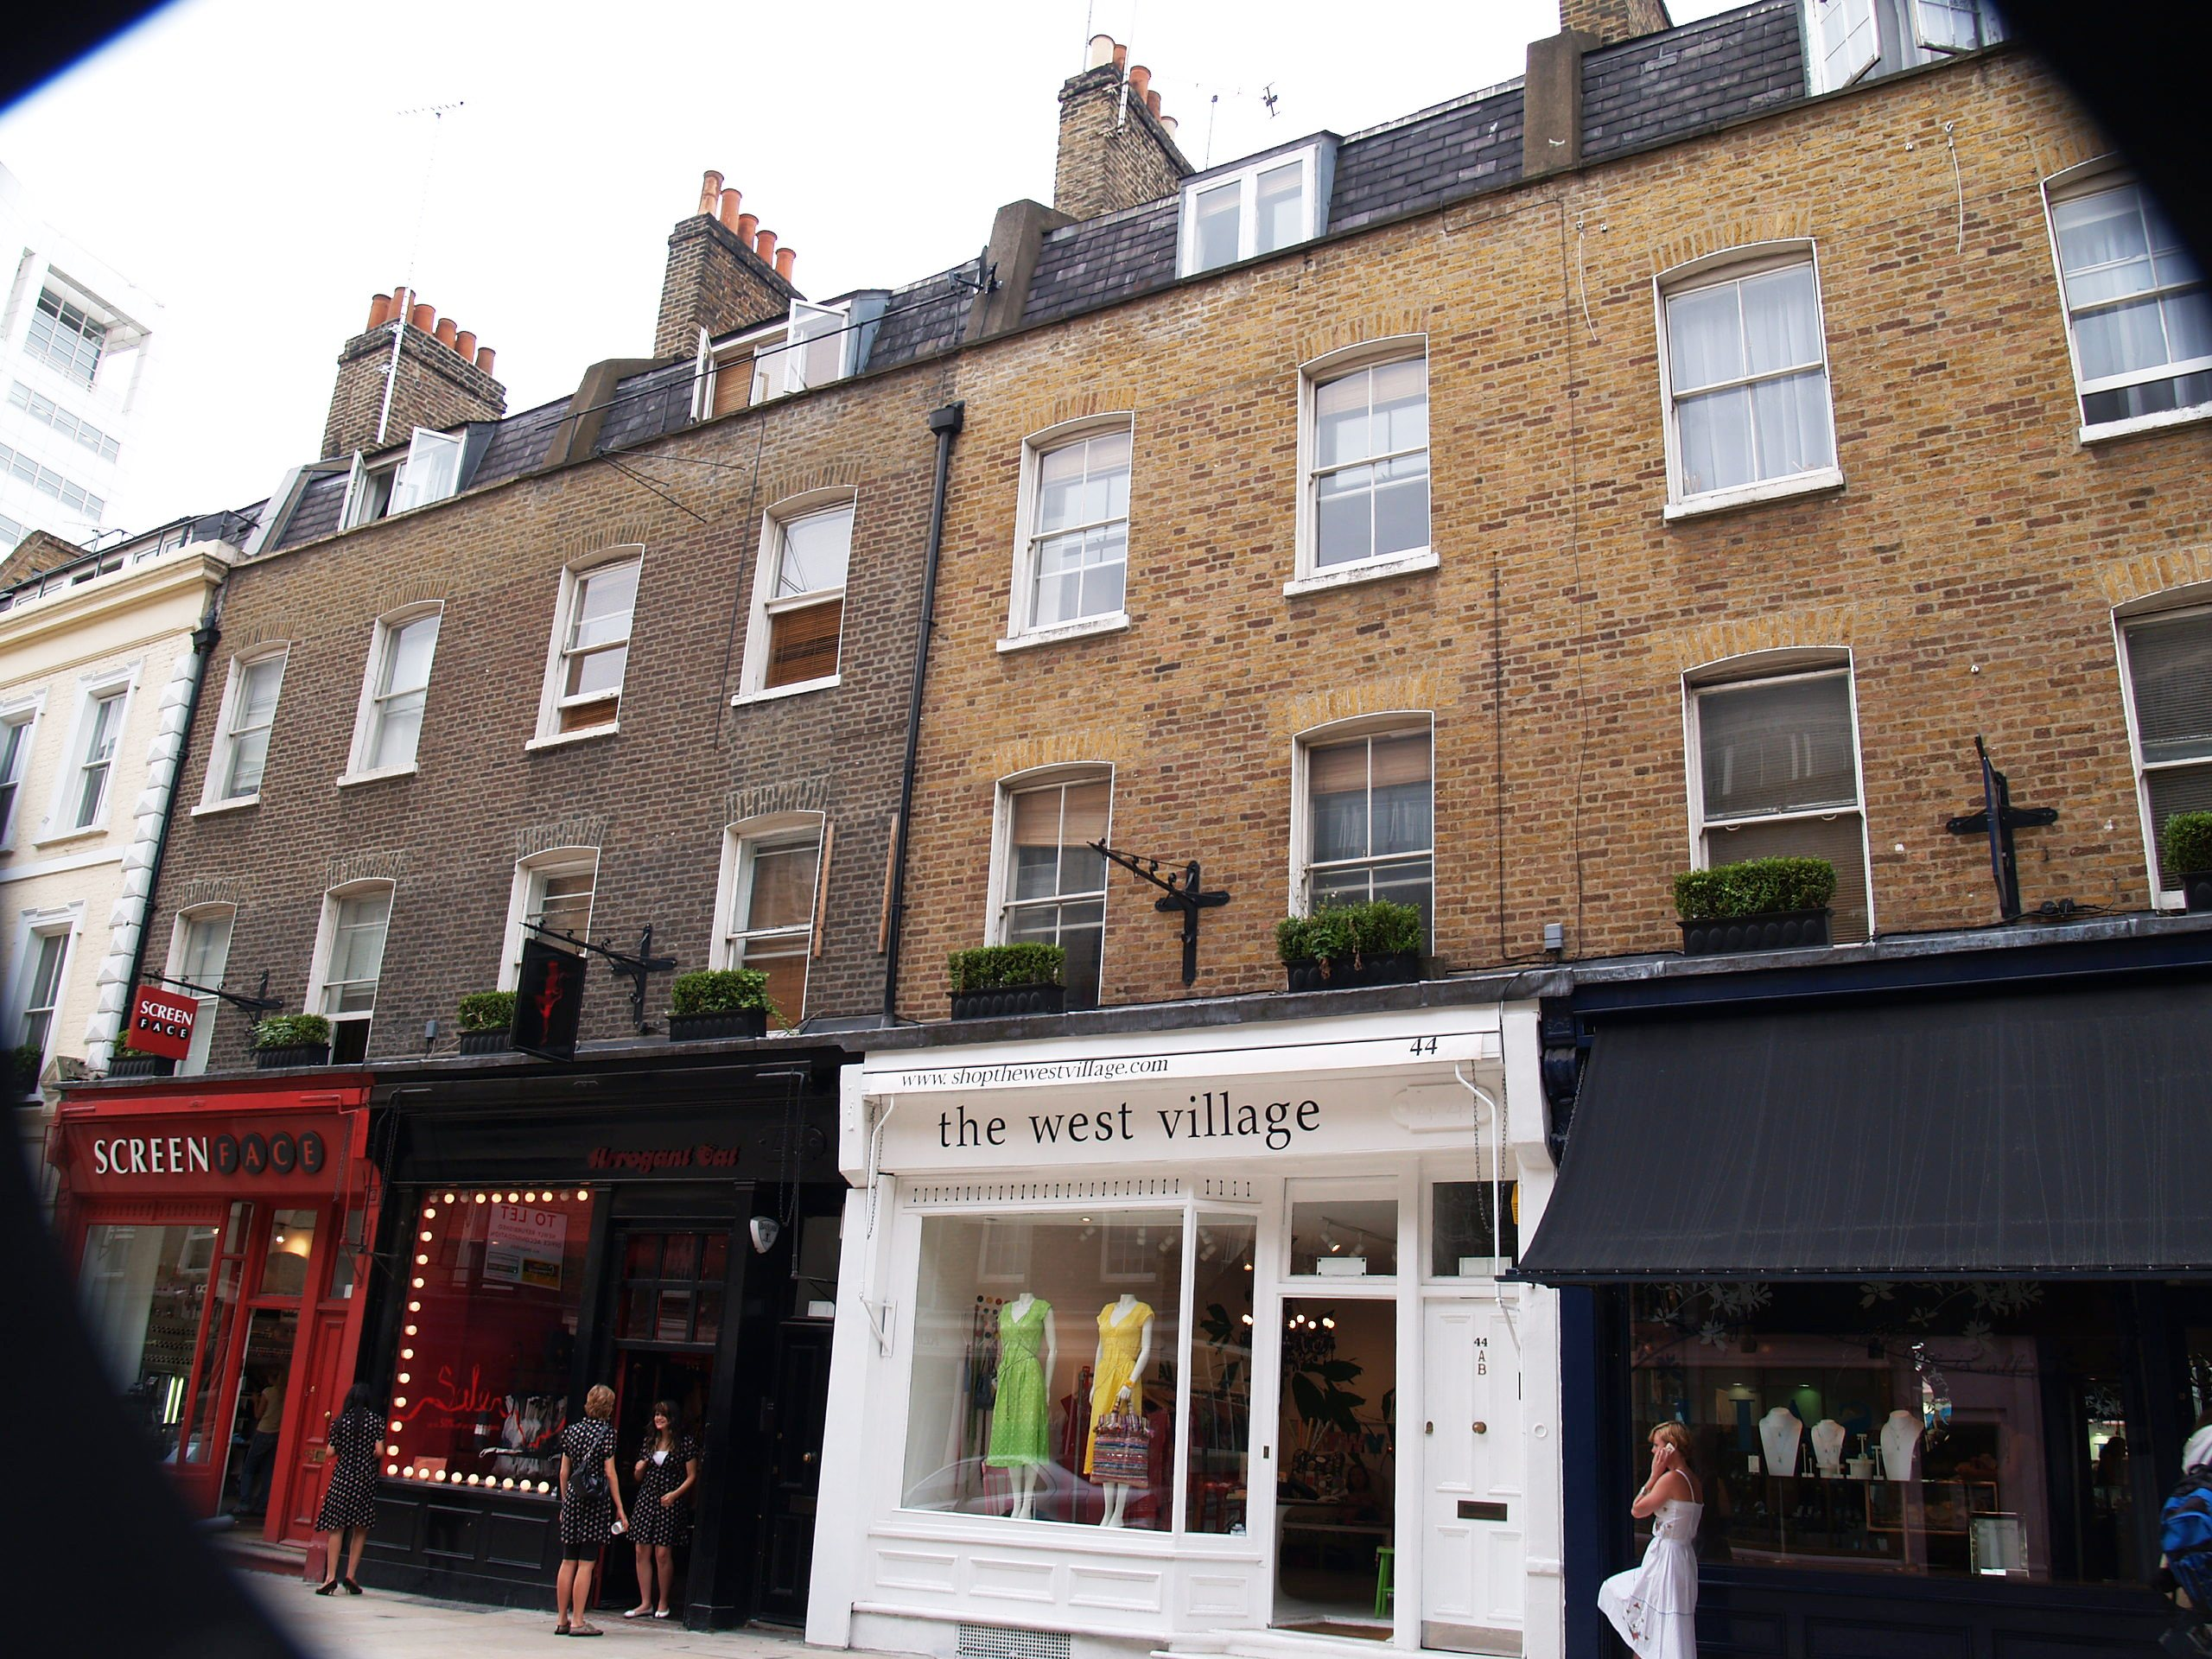 Monmouth Street south restored by Shaftesbury PLC.